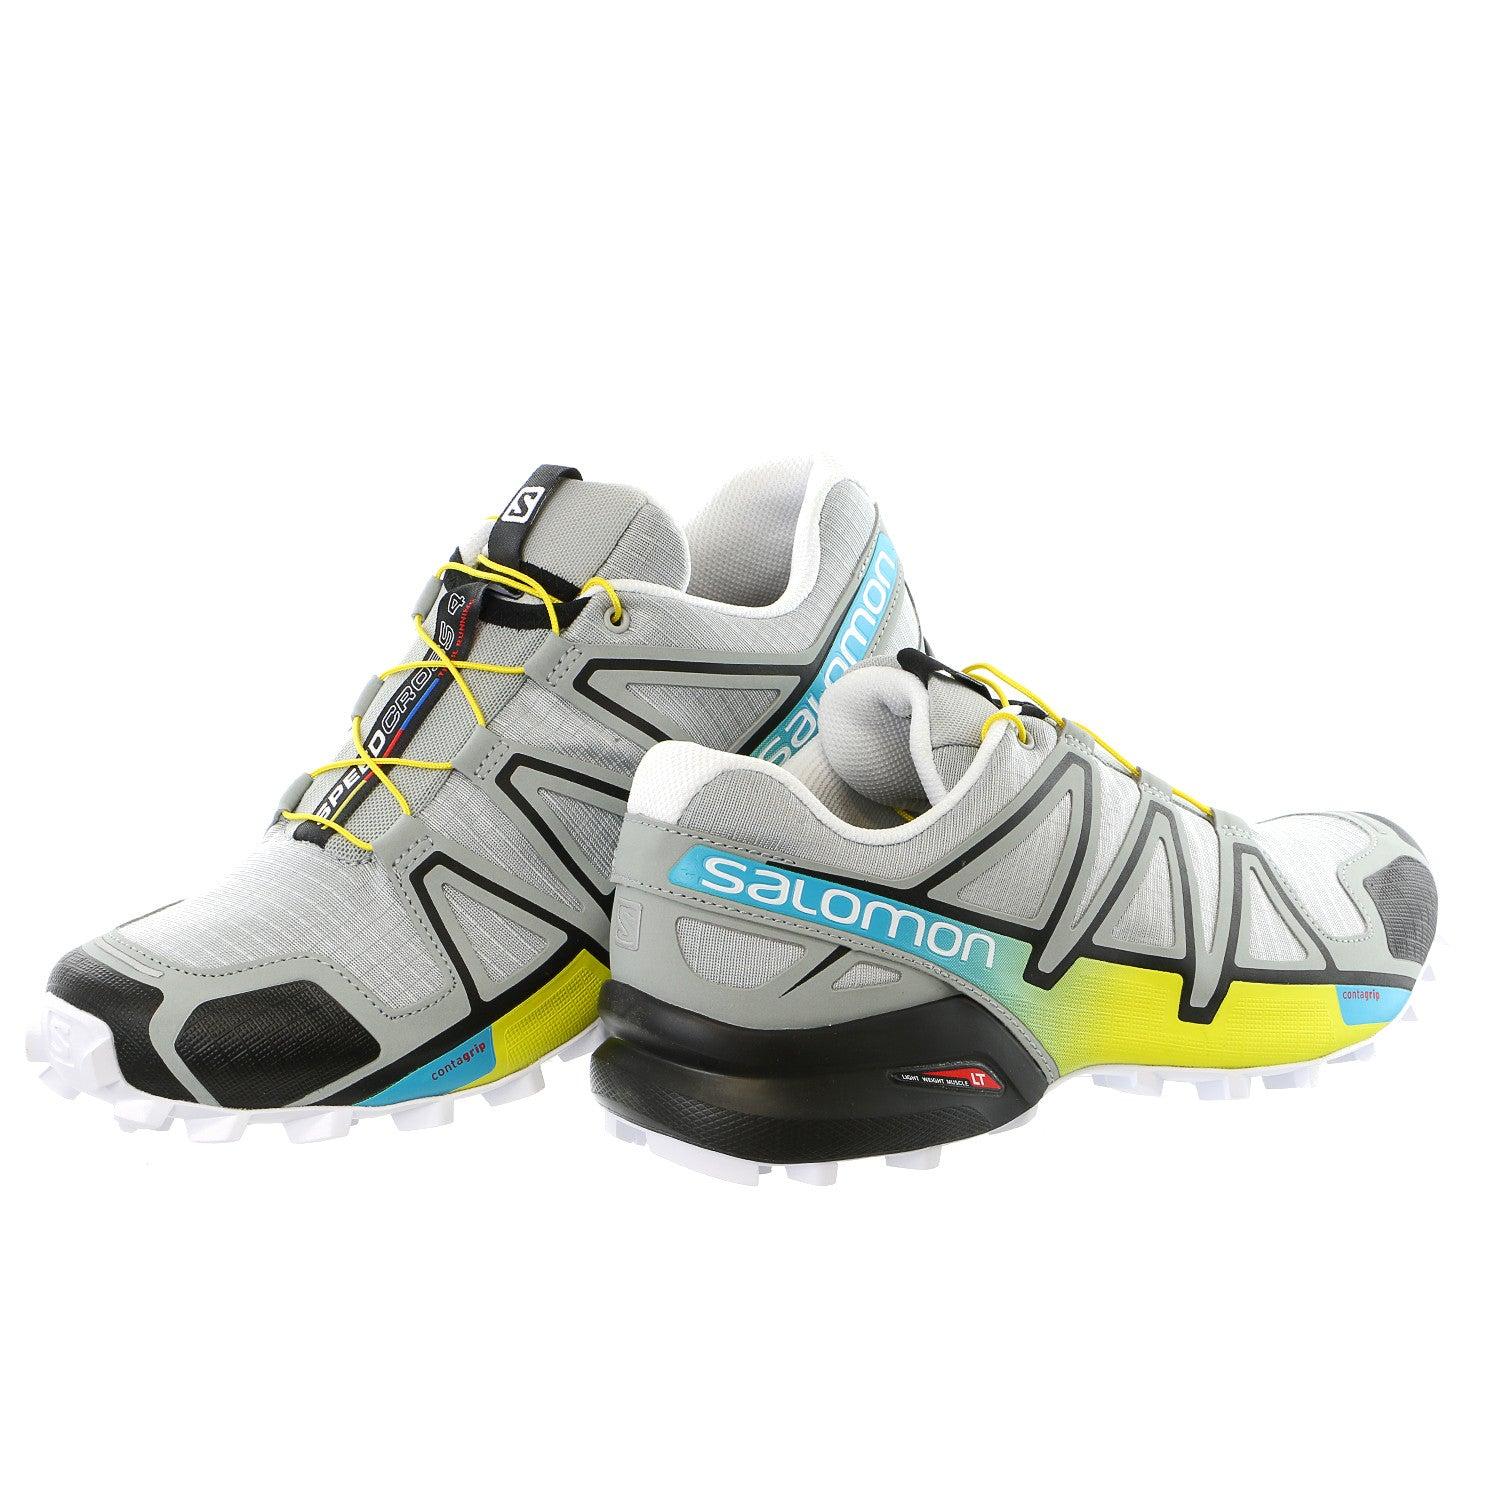 fdacc4ca7b2df5 Salomon Speedcross 4 Trail Running Shoes - Men s - Shoplifestyle